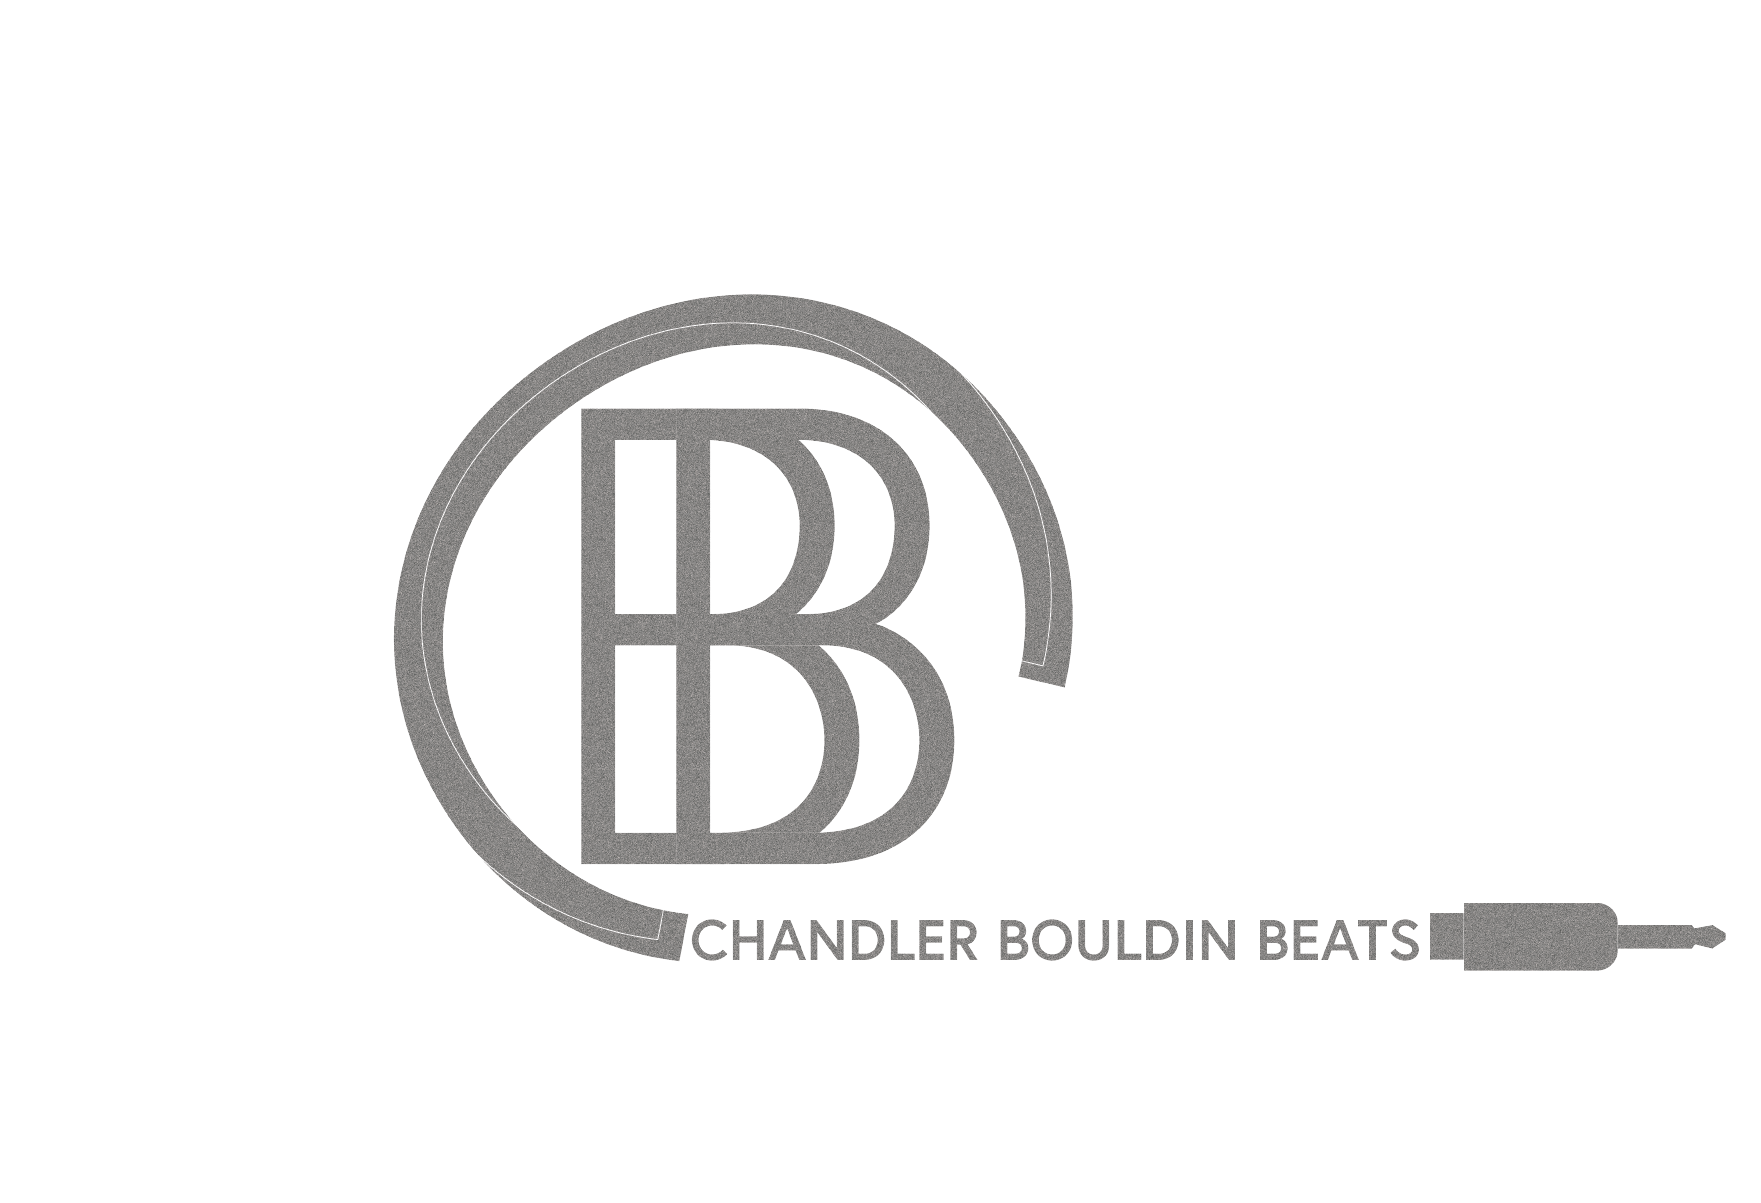 Chandler Bouldin Beats